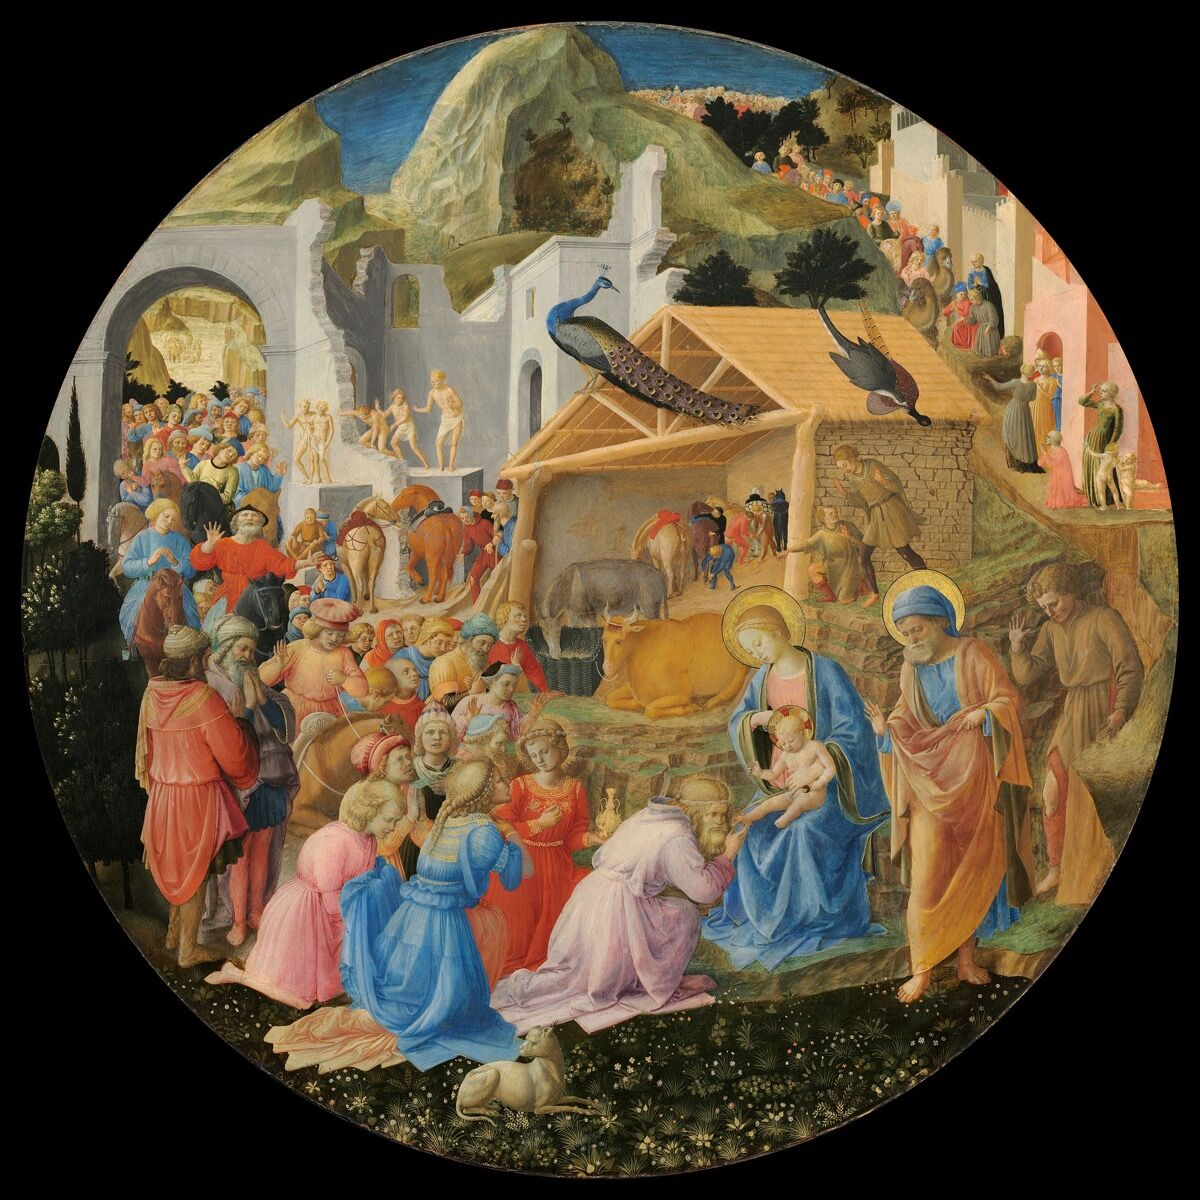 Fra Angelico and Fra Filippo Lippi, The Adoration of the Magi, c. 1440-60. Image via Wikimedia Commons.